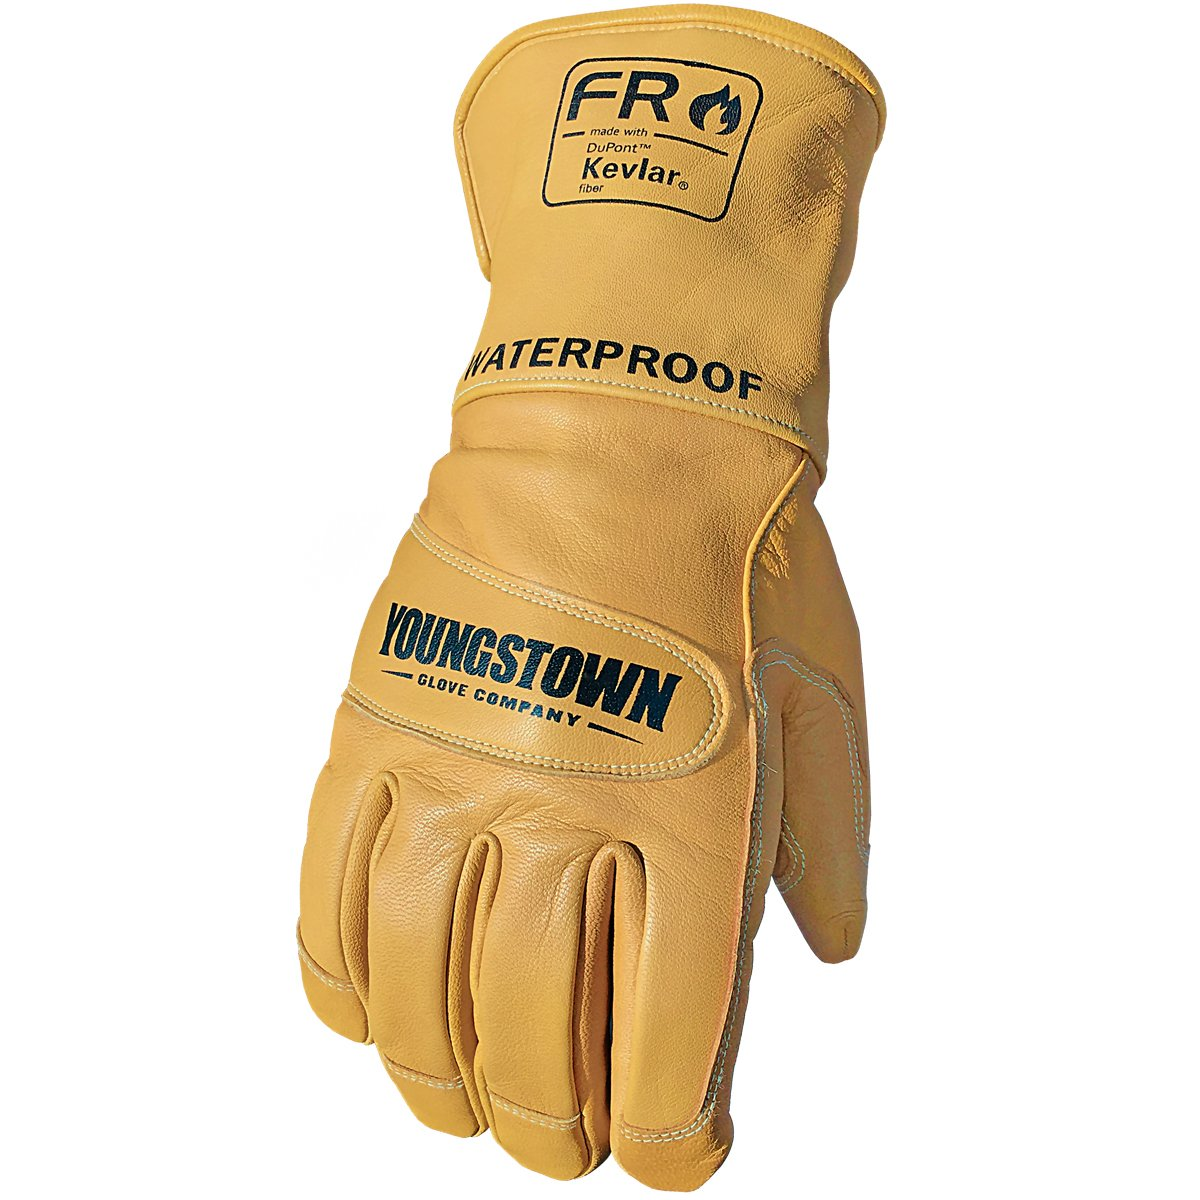 Youngstown Glove 11-3285-60-L Flame Resistant Waterproof Leather Utility Lined with Kevlar Gloves, Large by Youngstown Glove Youngstown Equipment Co